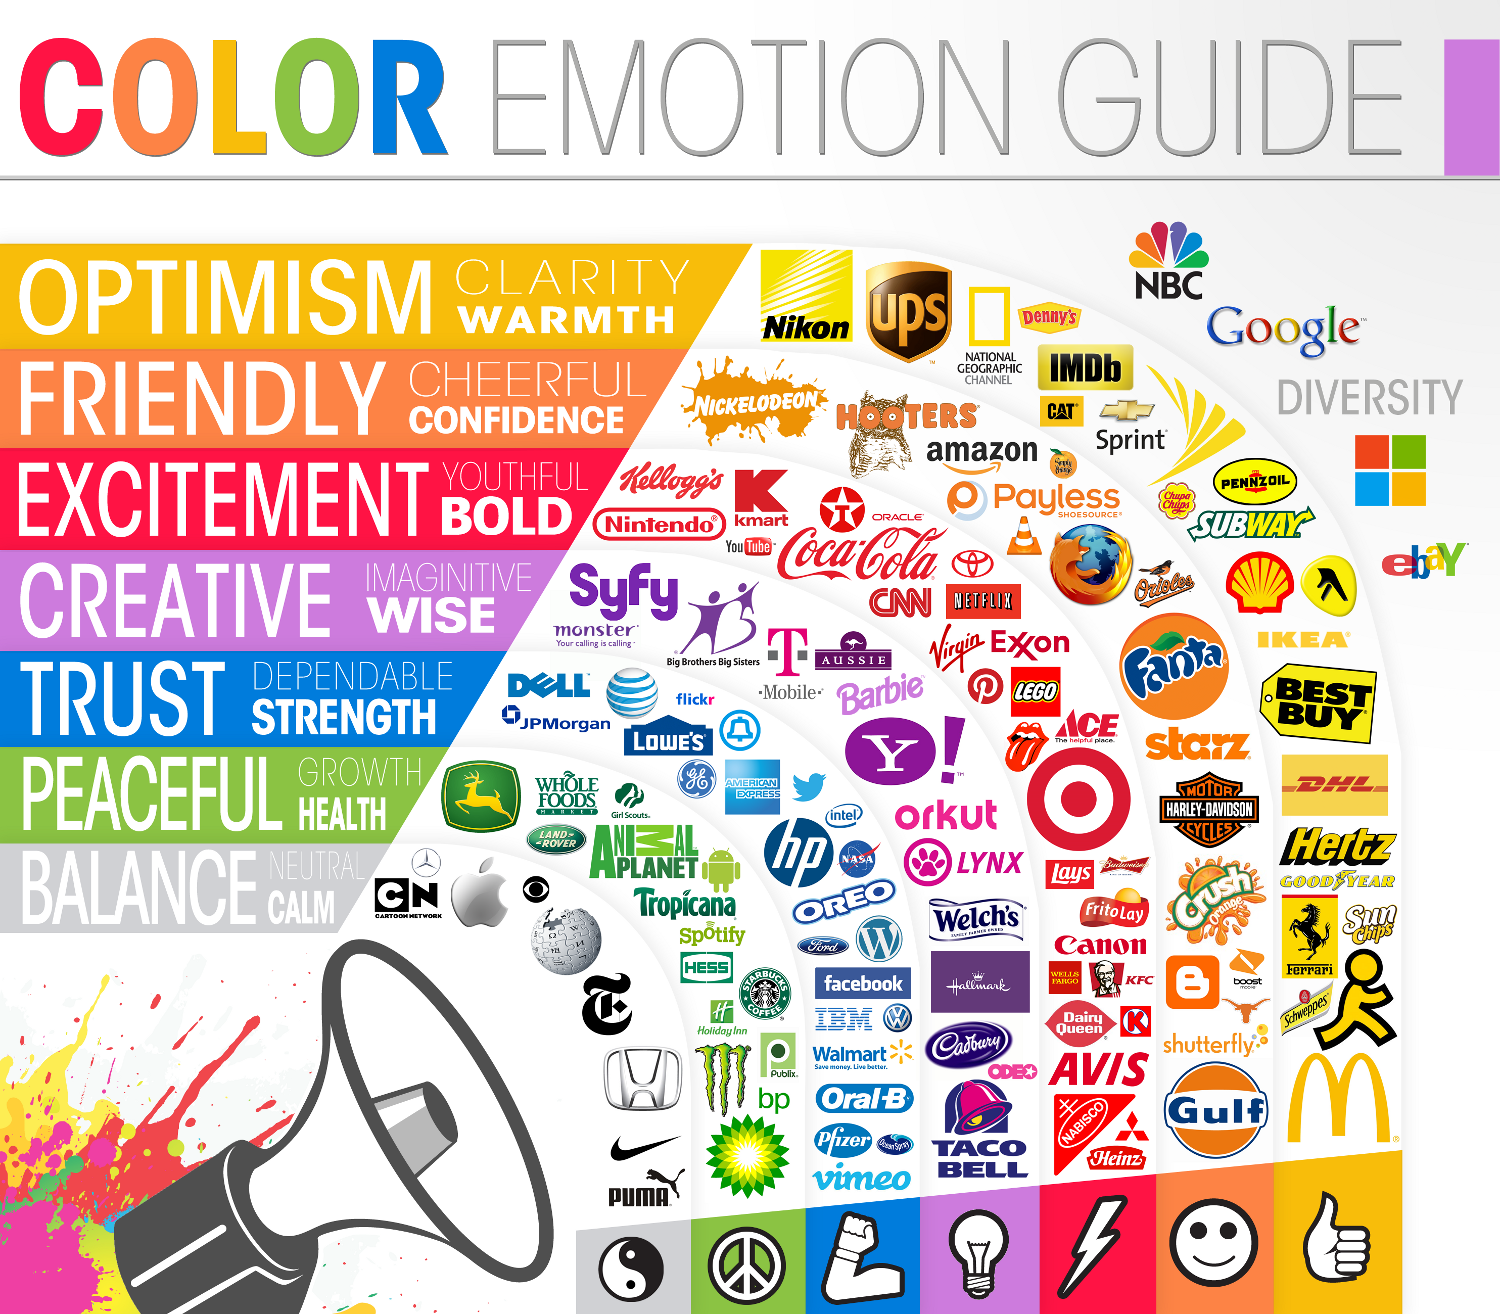 Direct Mail - Color Emotion Guide